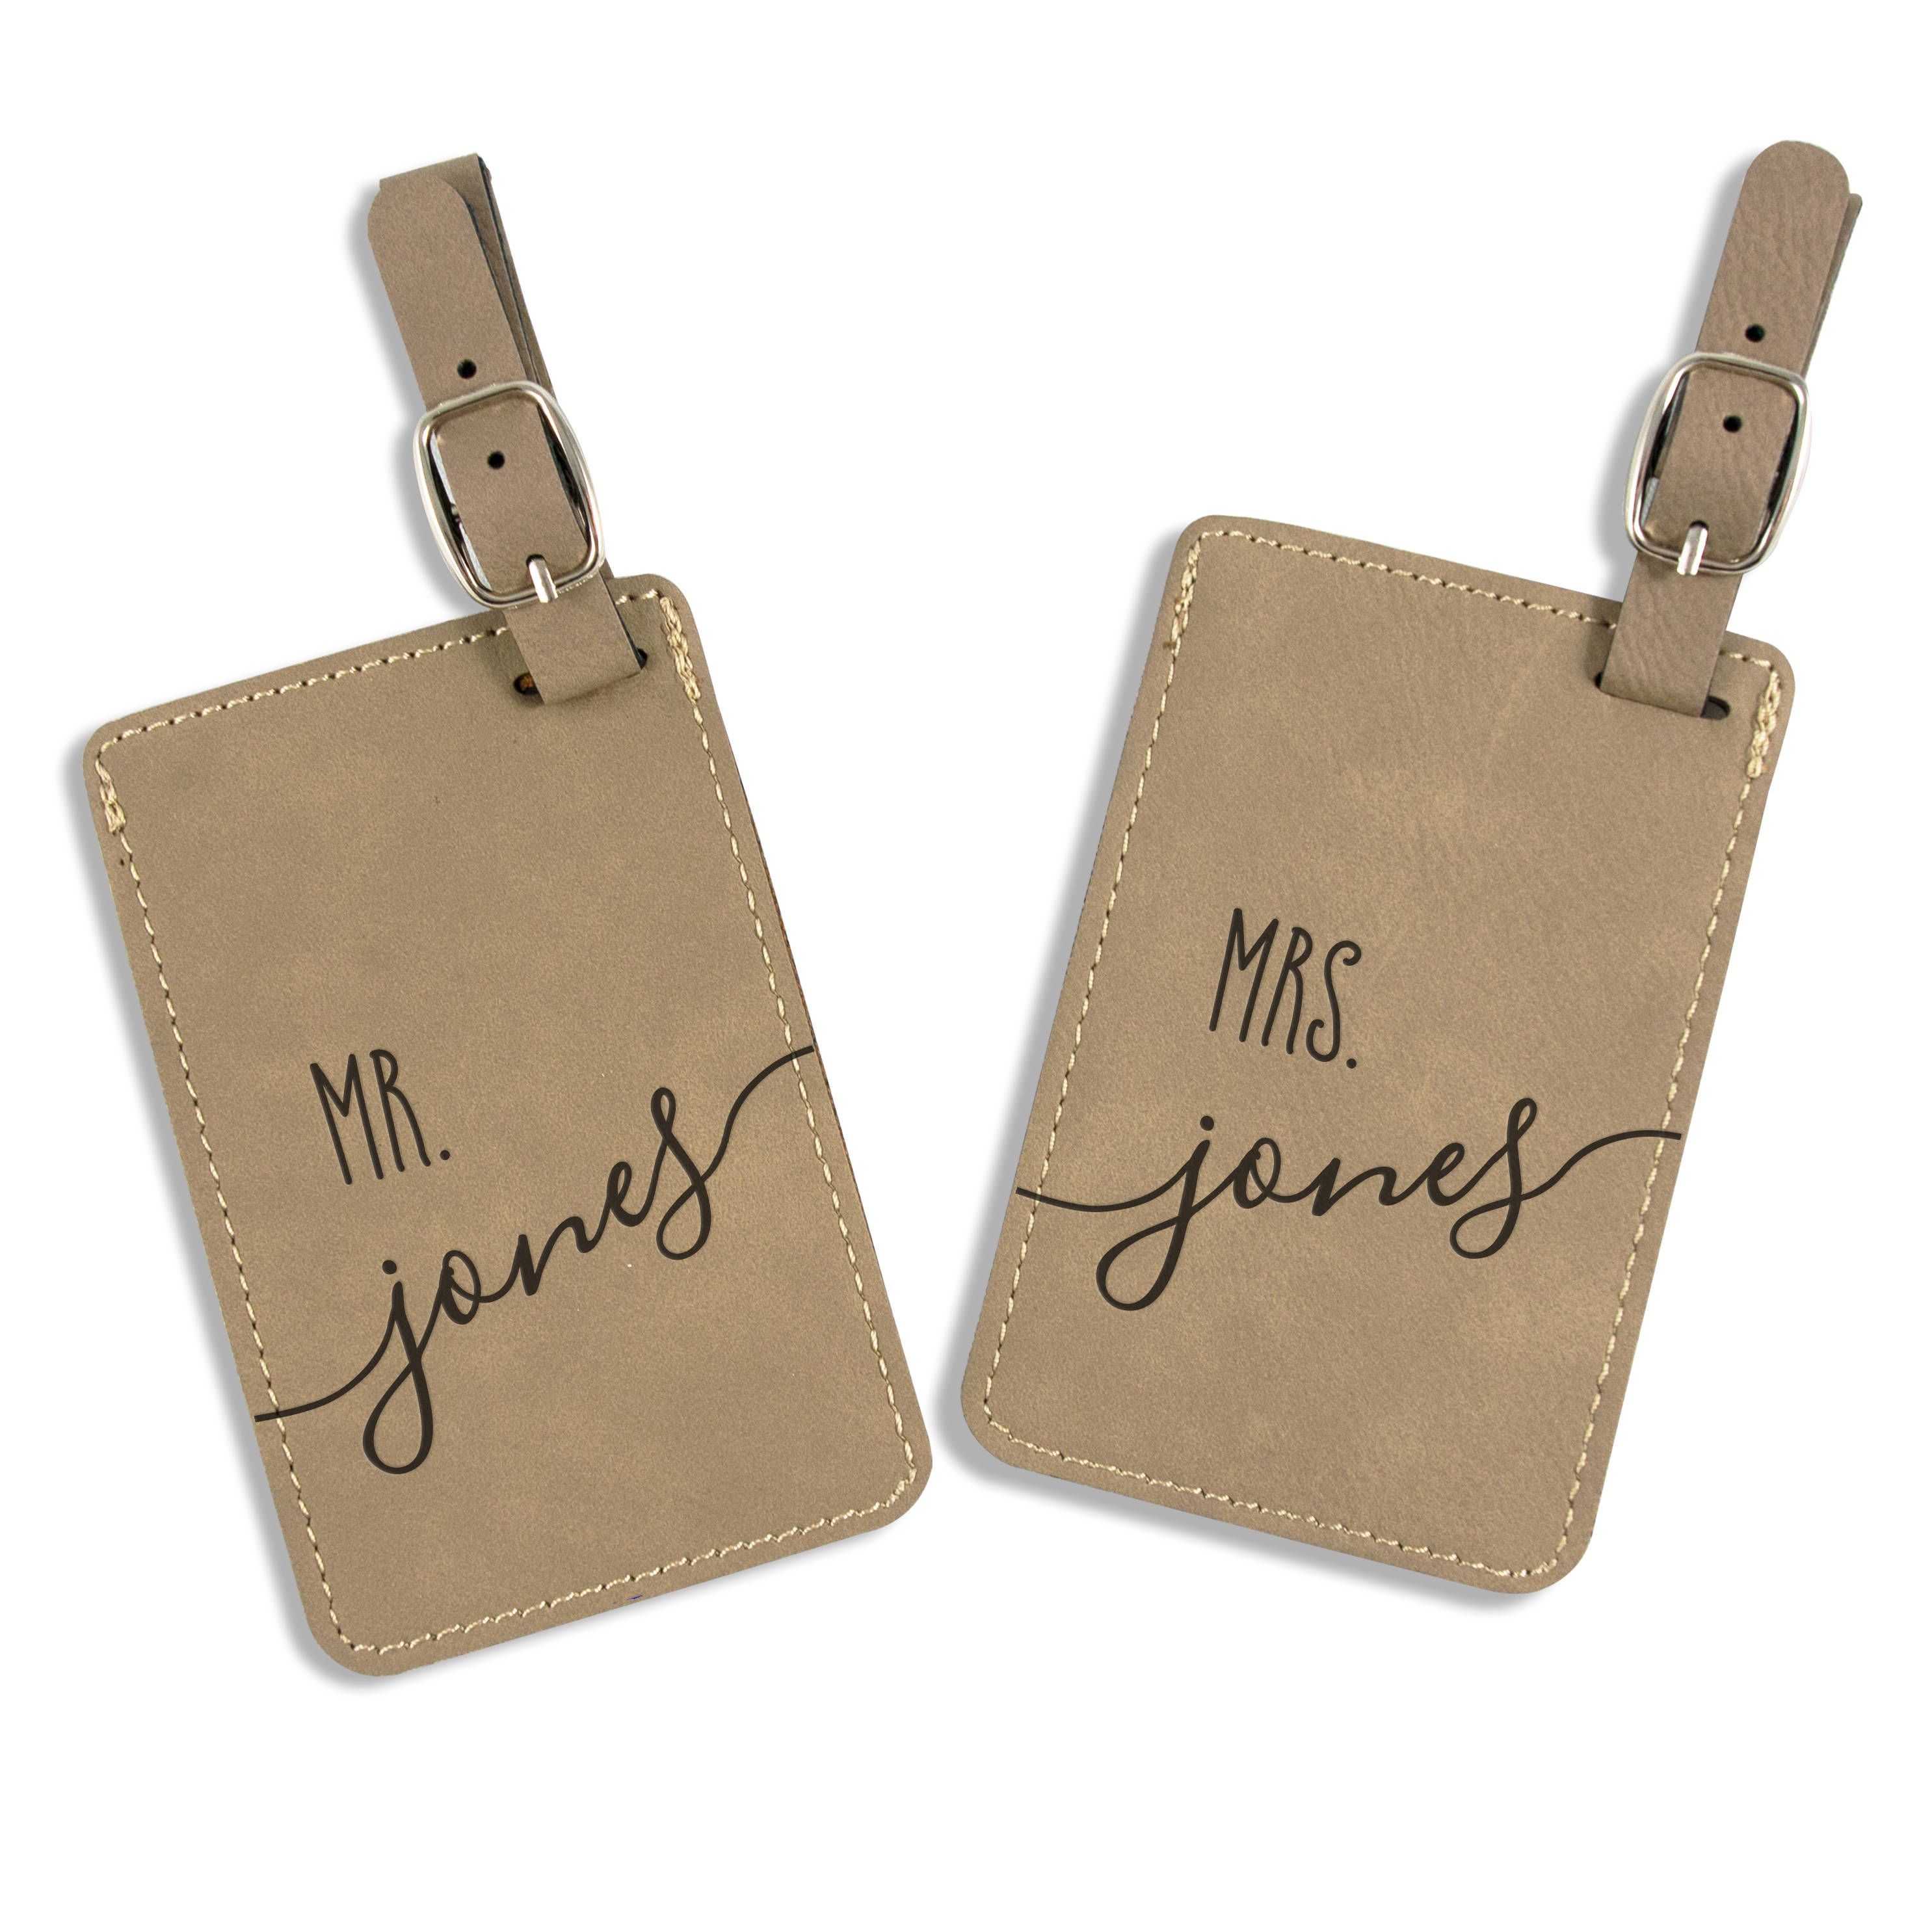 1cbbf0a8ce99 Wedding Gift - Personalized Luggage Tag - Leatherette Bag Tag ...